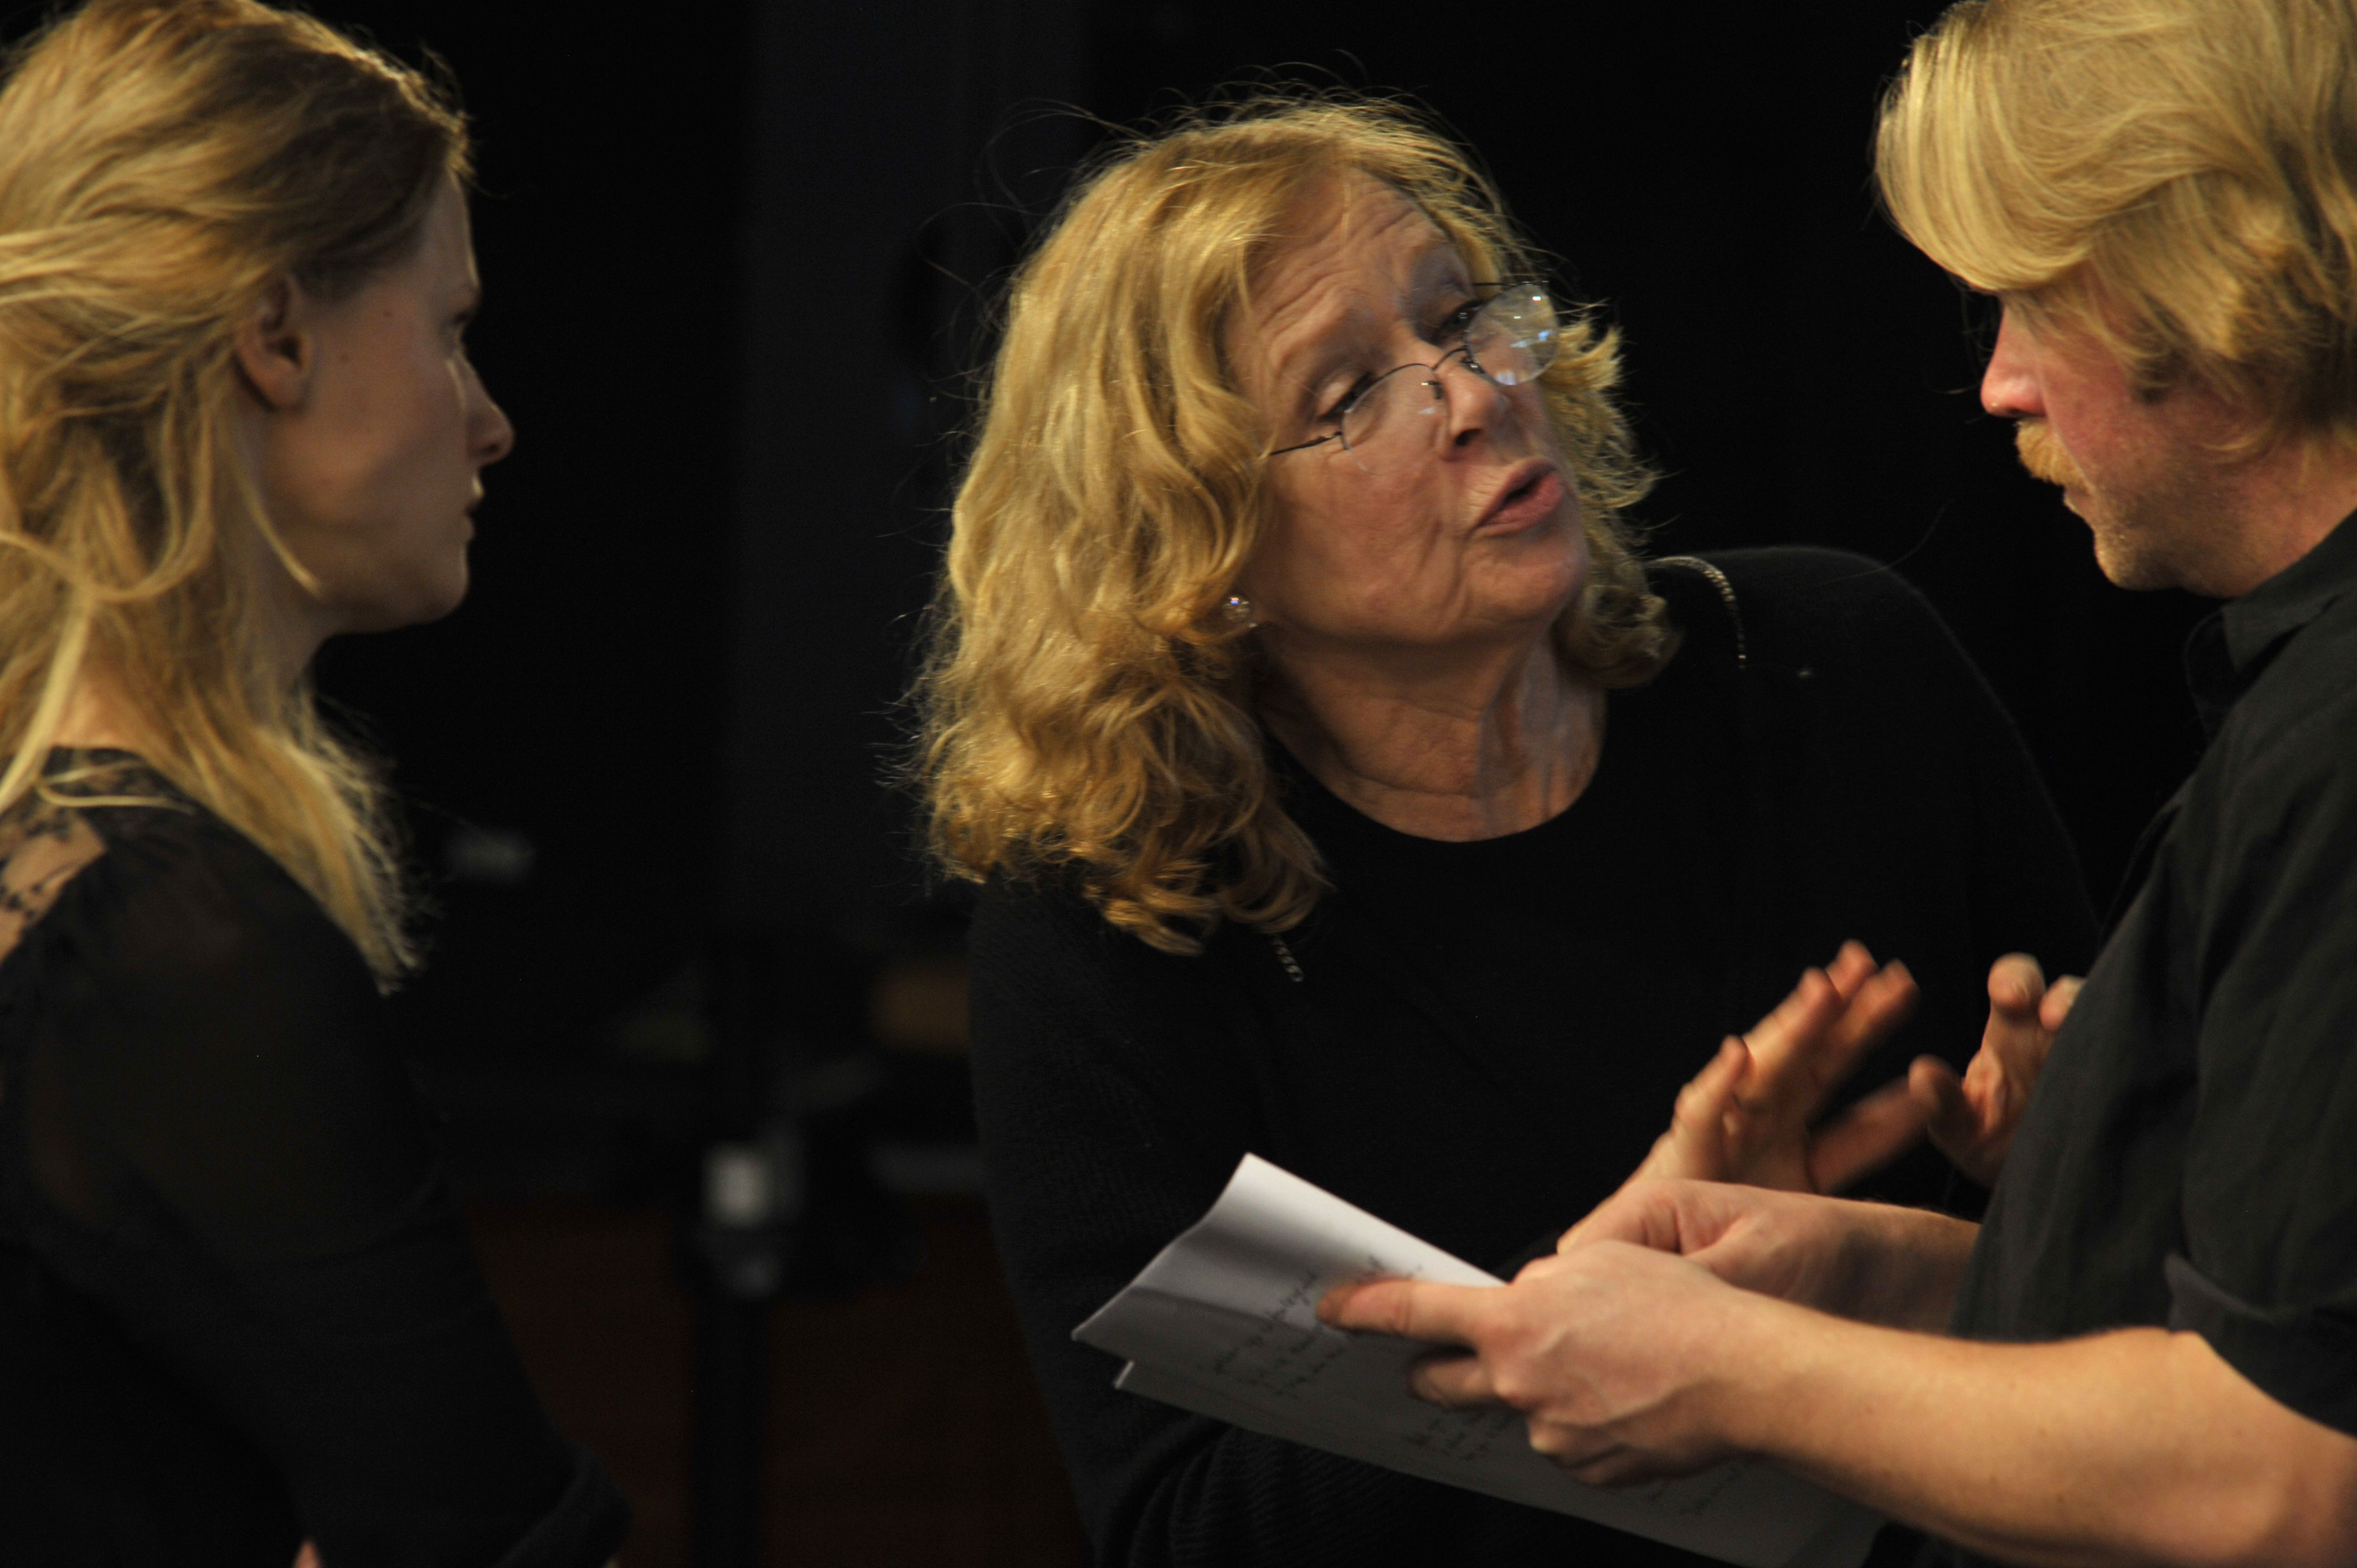 Liv Ullmann discussing with two actors